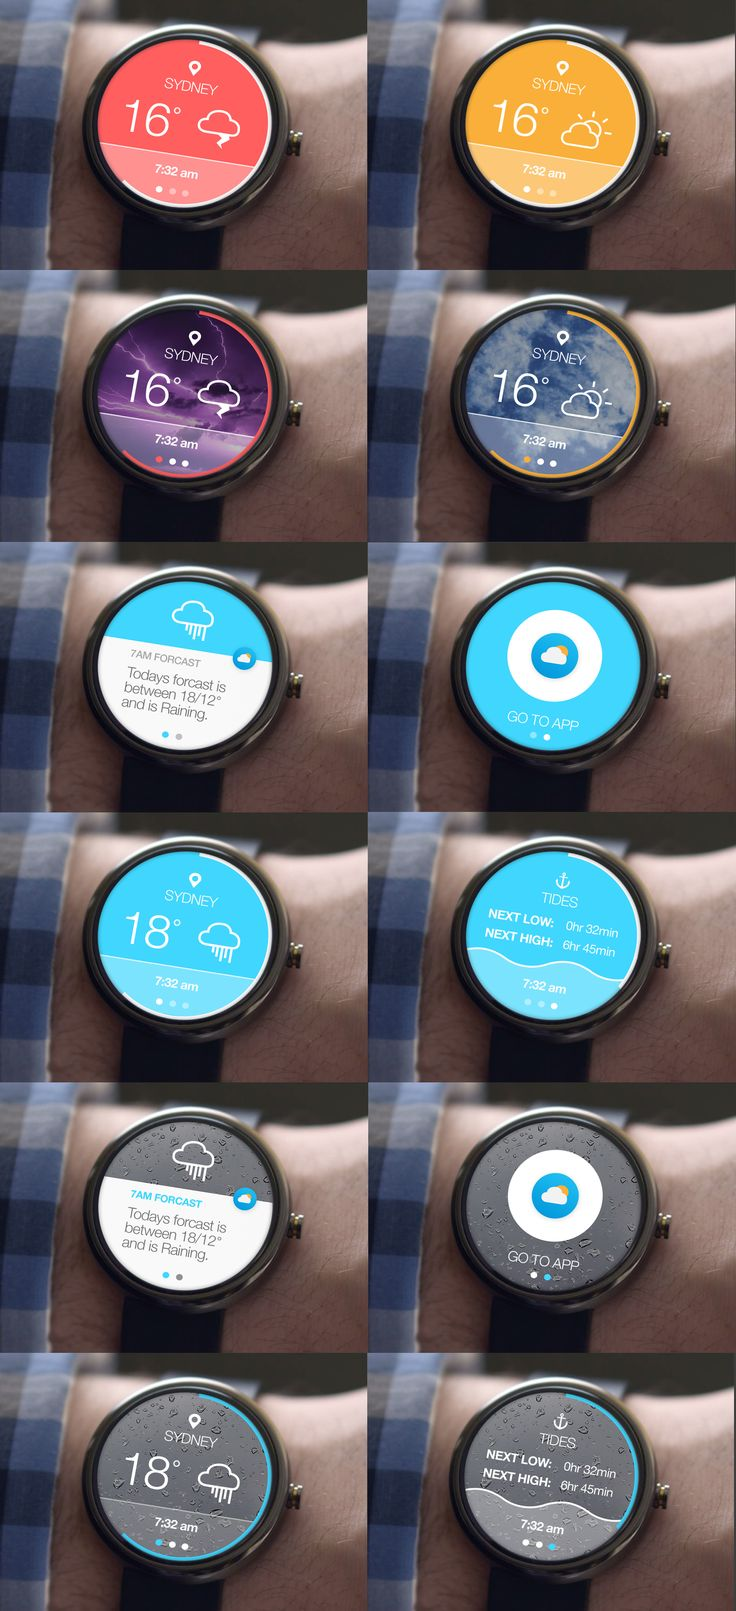 Experimenting with the Moto 360 #moto360 #motorola #mobile